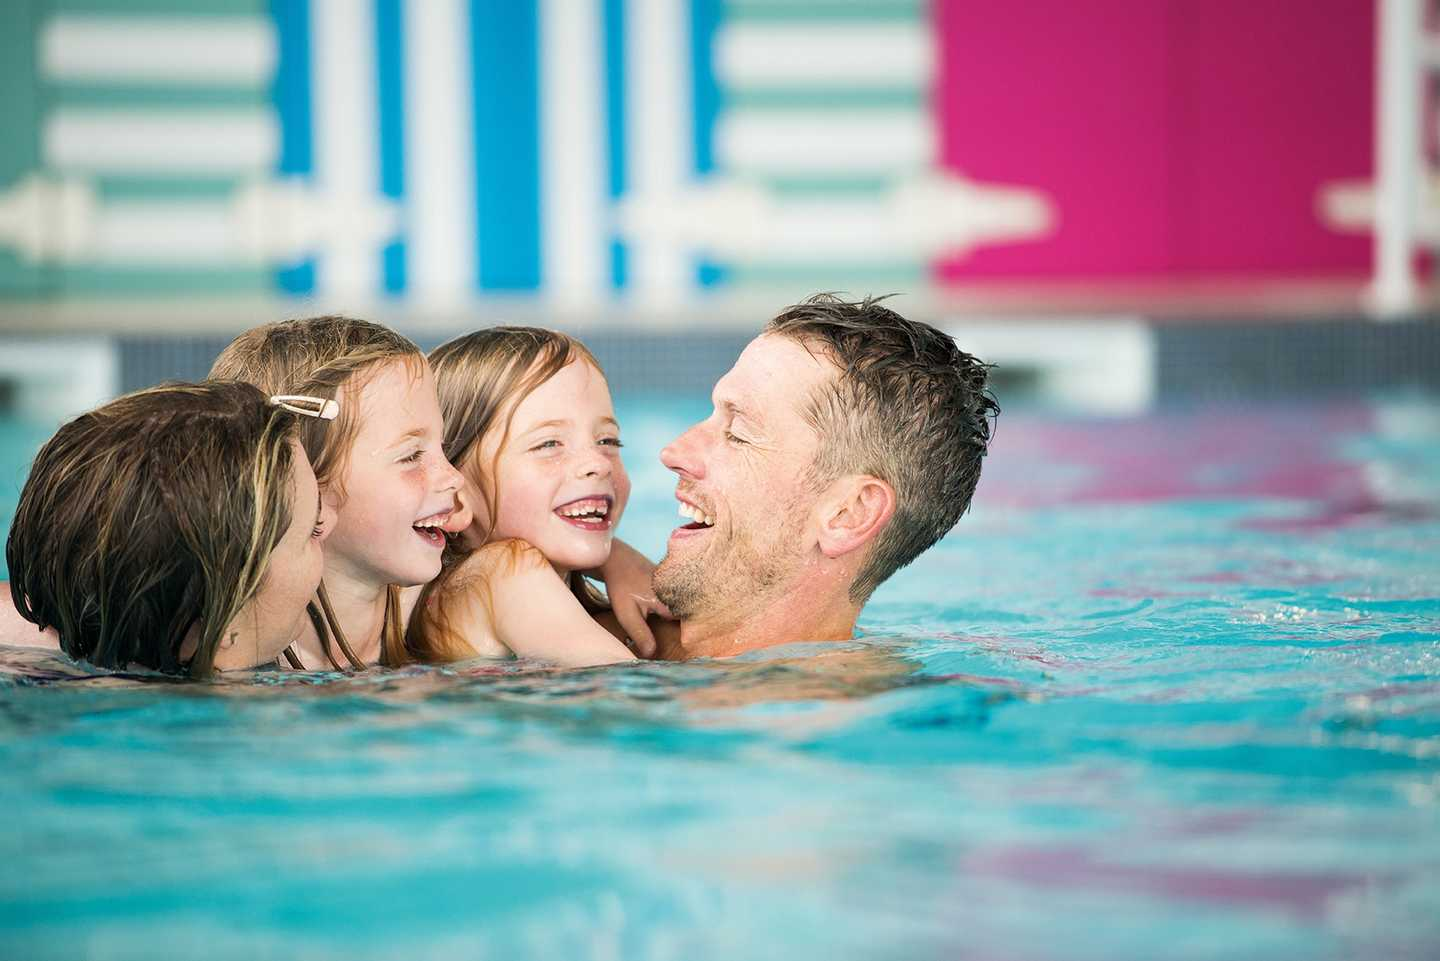 A family smiling as they spend time together in the indoor pool